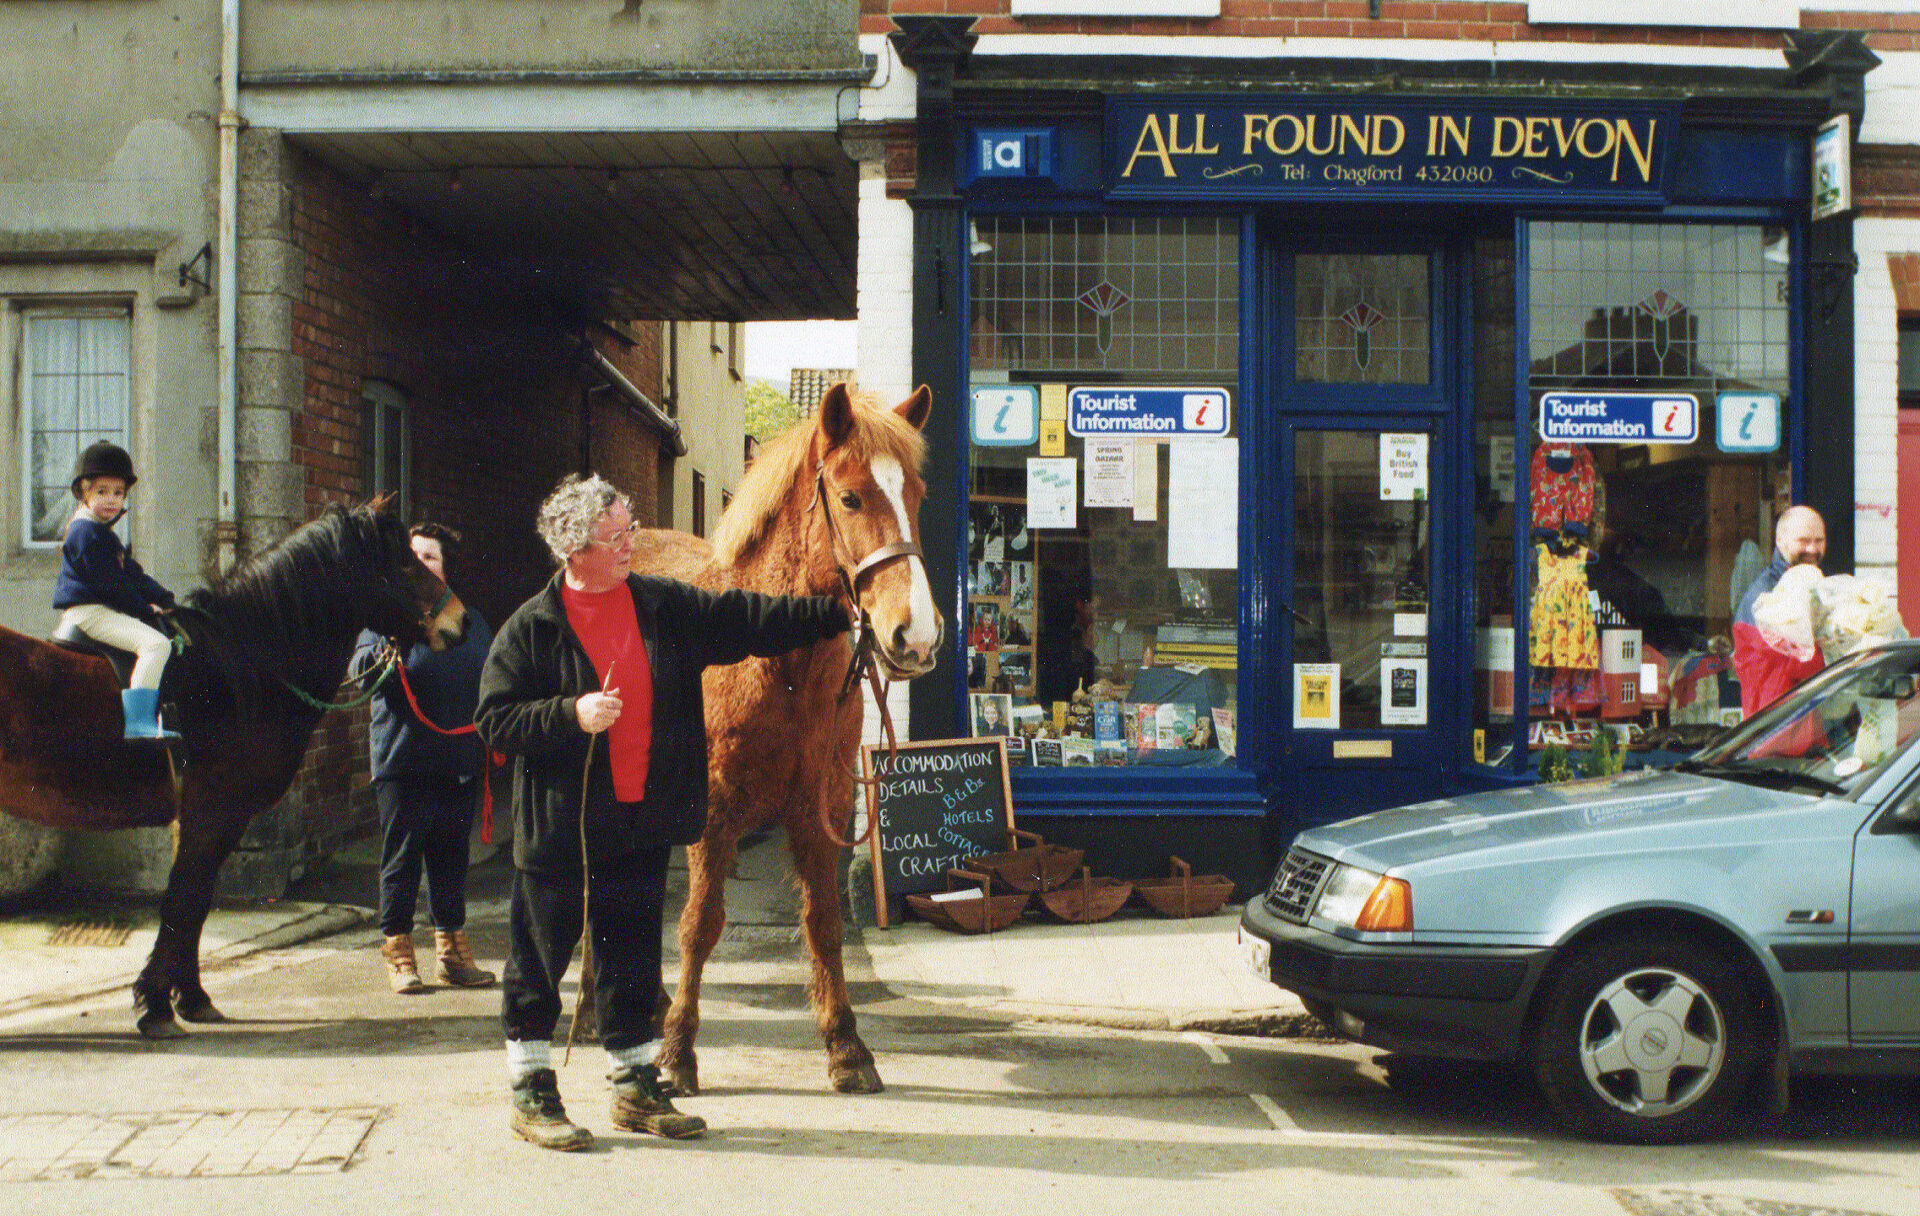 Sheila Tharby with her horse  outside my All Found in Devon shop next to The Three Crowns. Happy days.